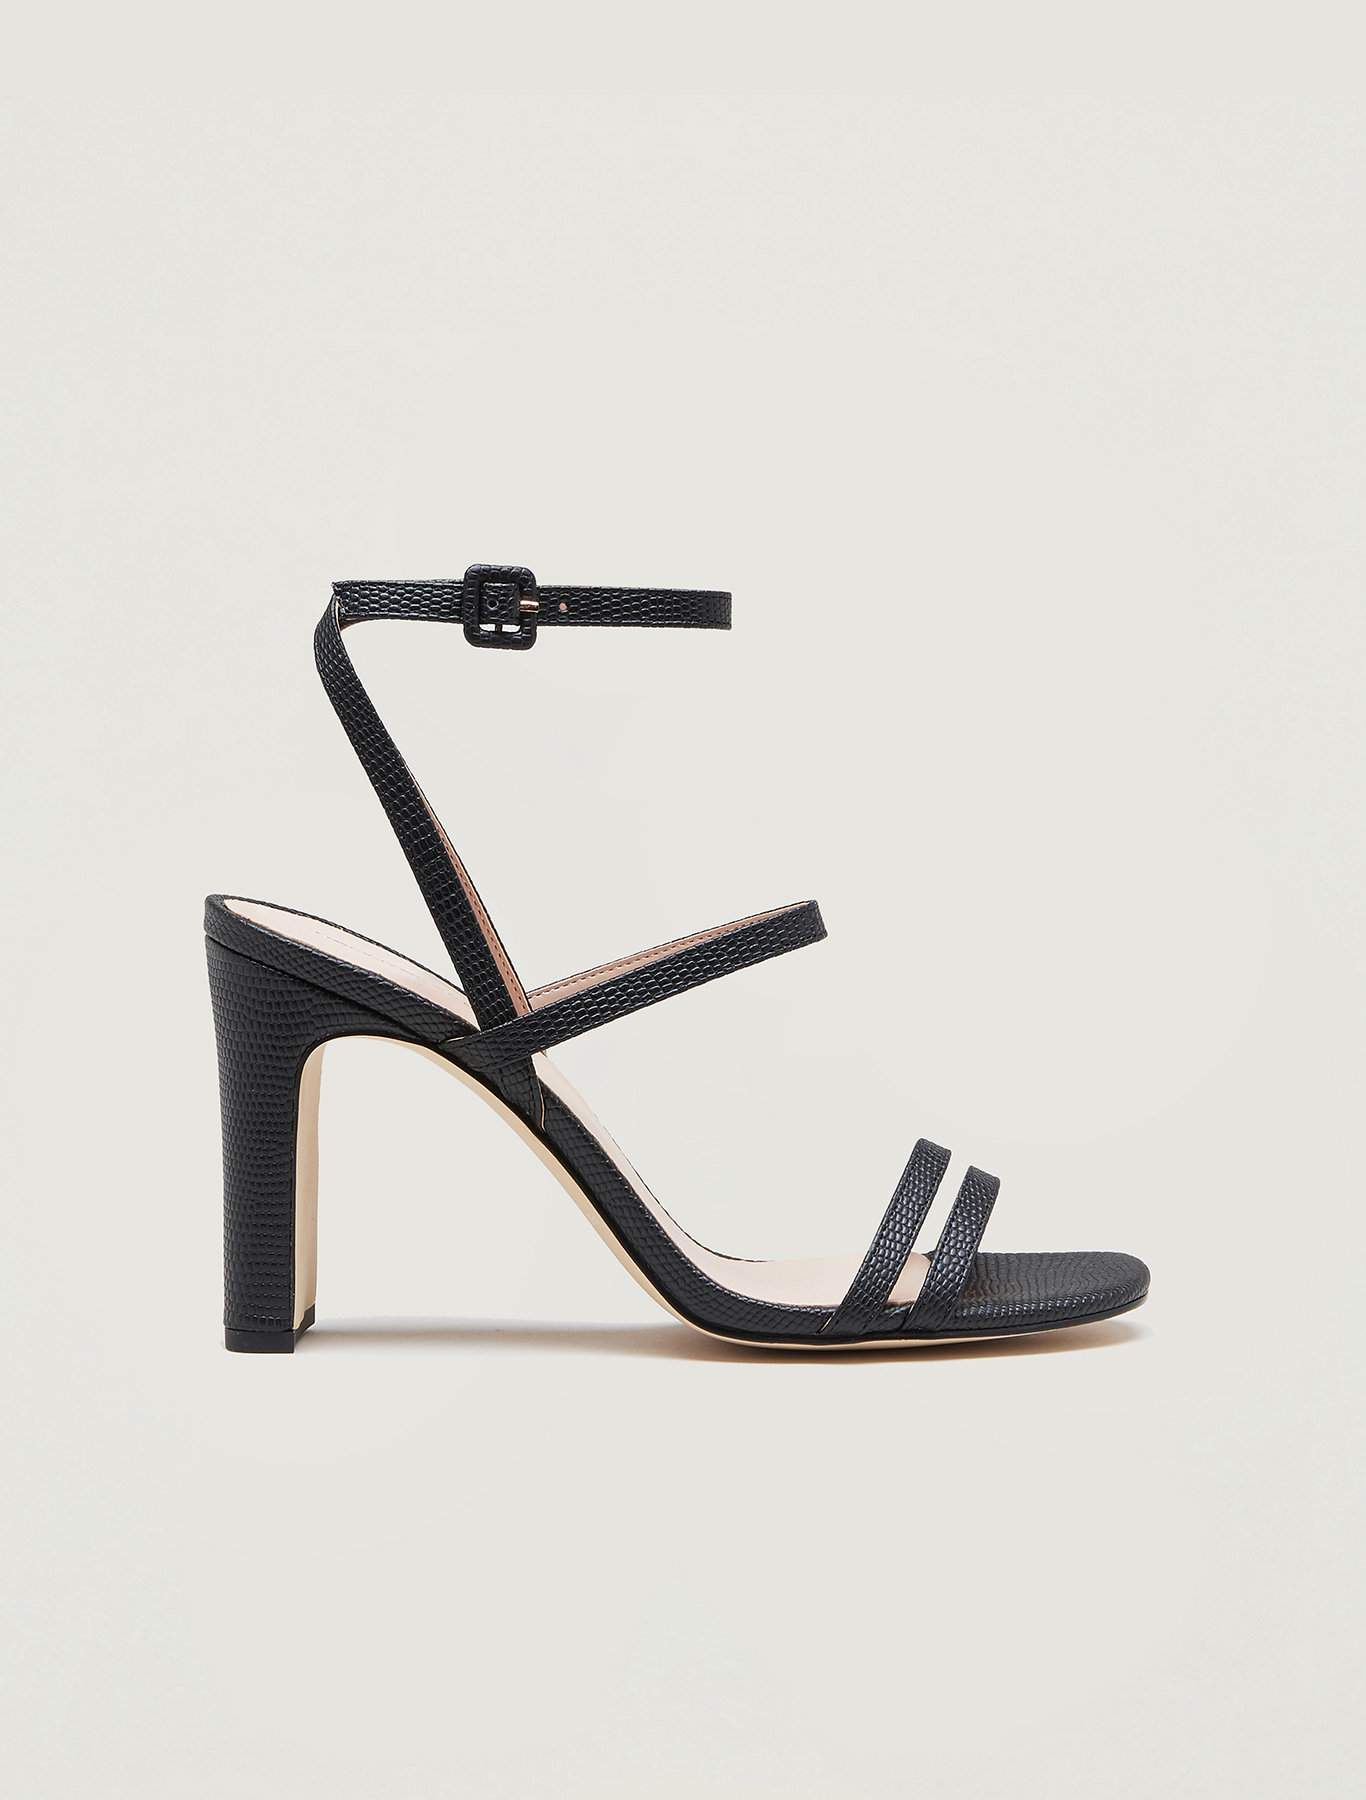 Lizard-print high-heeled sandals - black - pennyblack